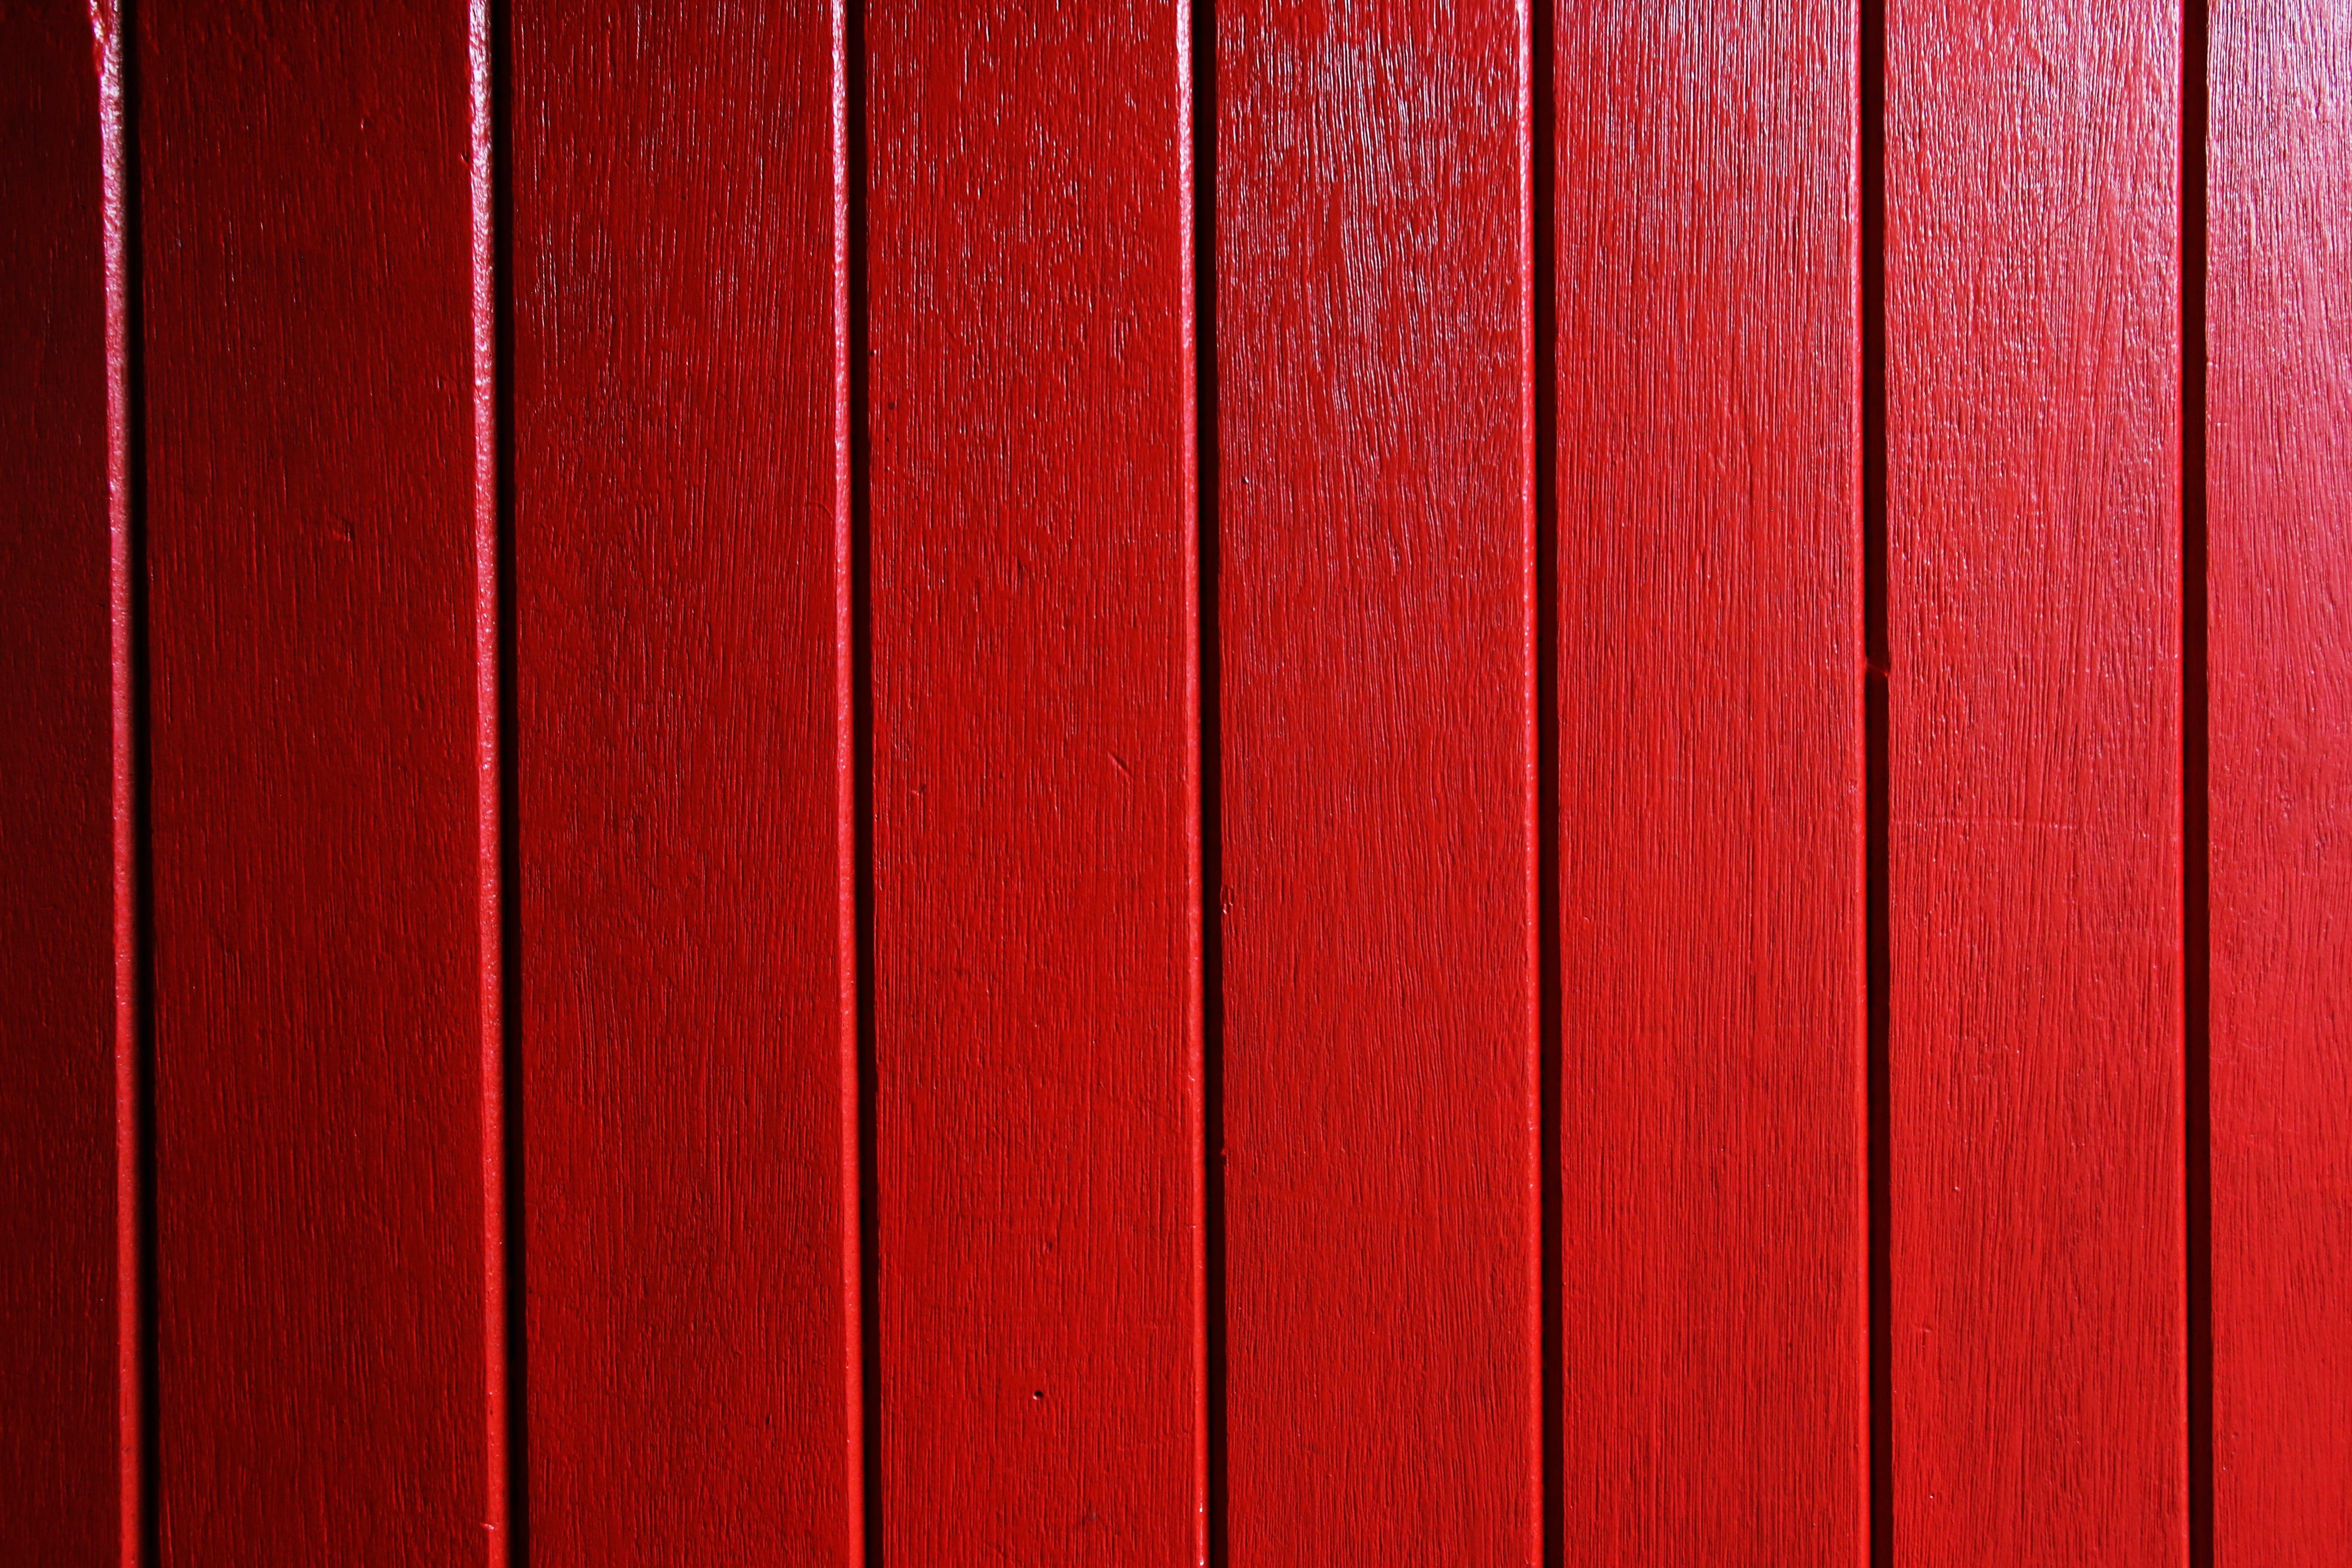 Red Wooden Surface